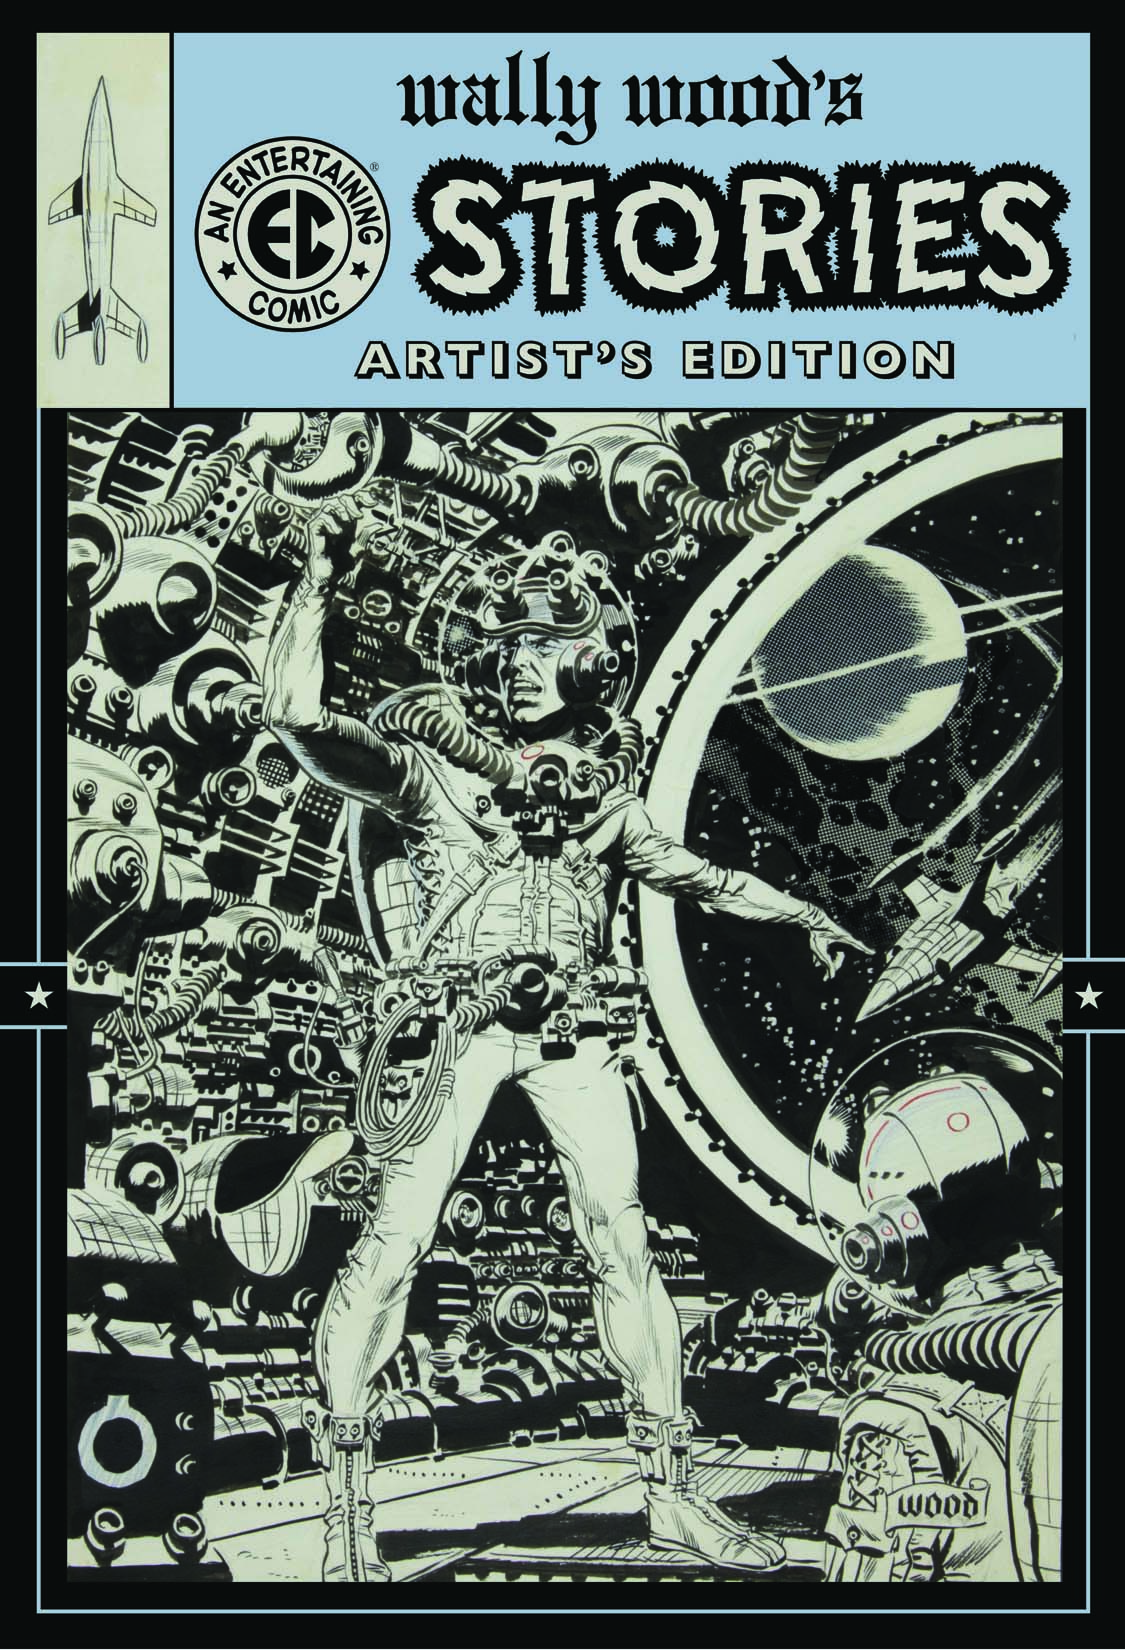 [Wally Wood Cover Image]